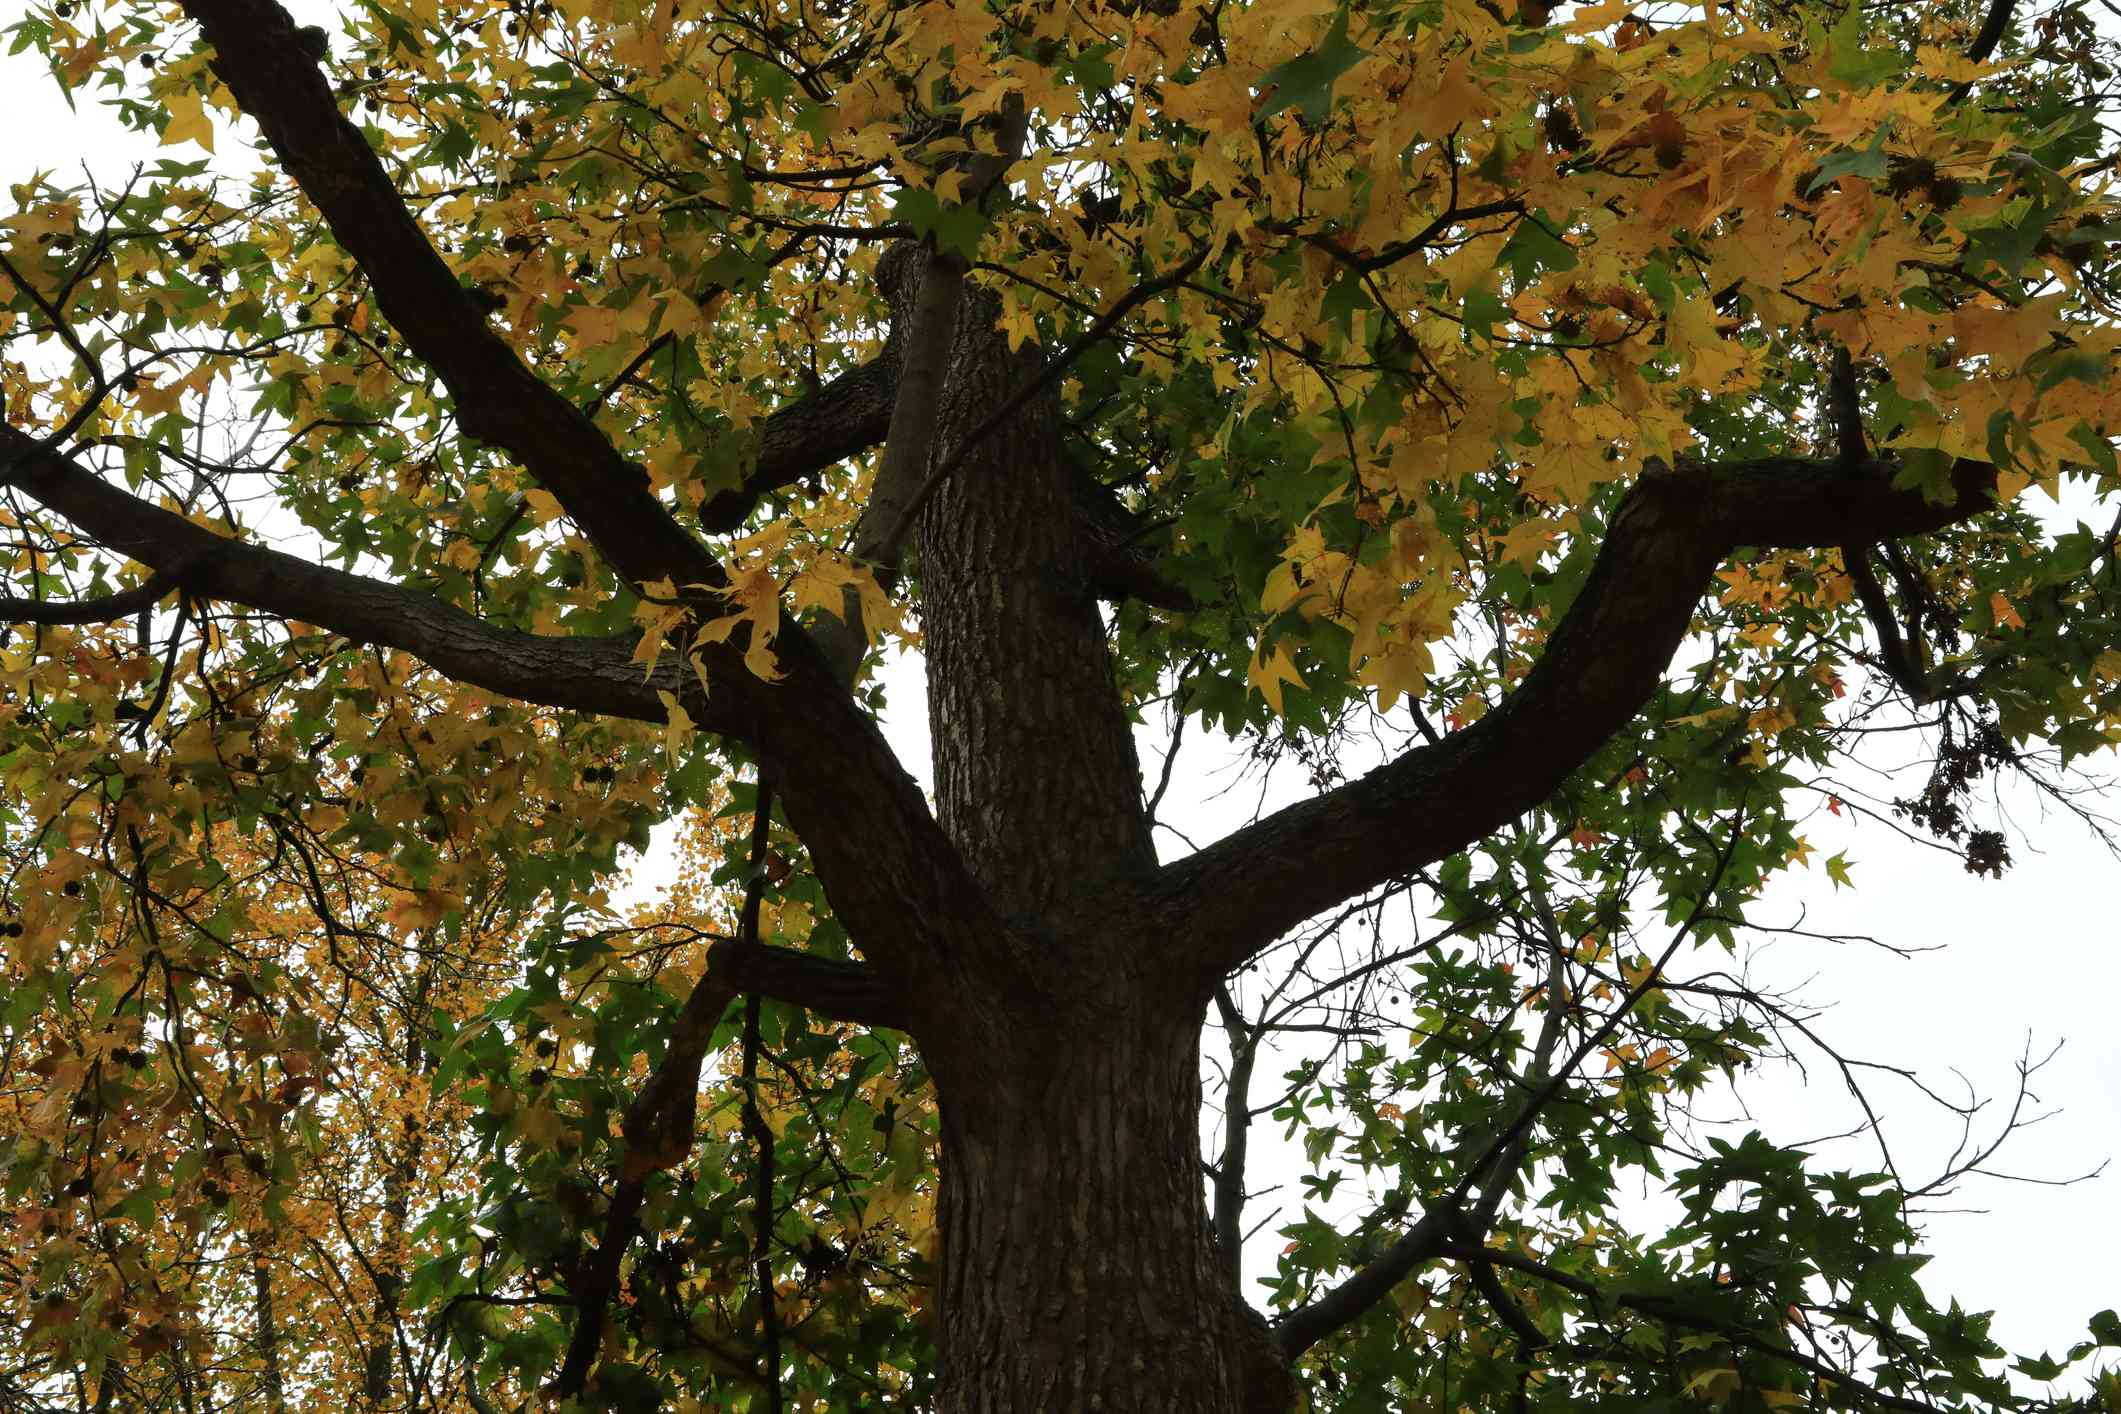 American sweetgum with yellow and green flowers and brown trunk from below